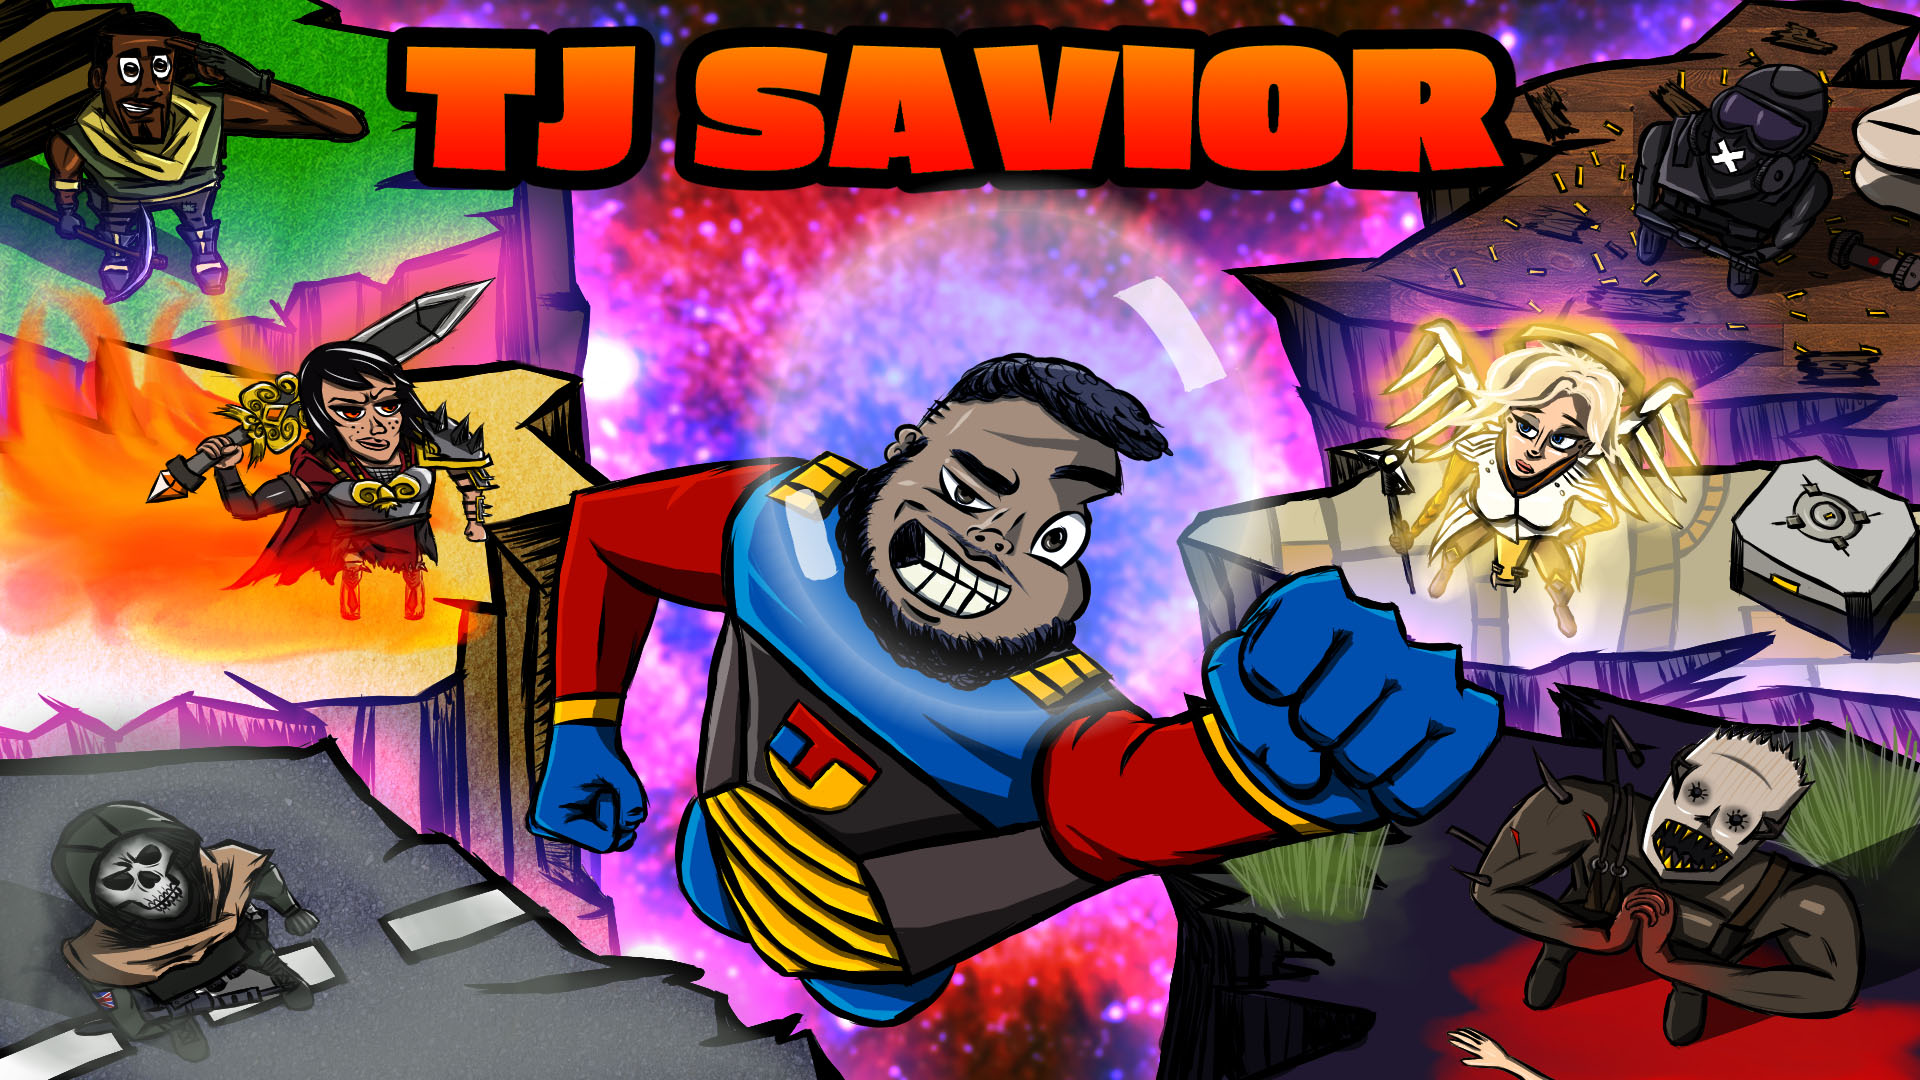 TJ Savior Twitch banner